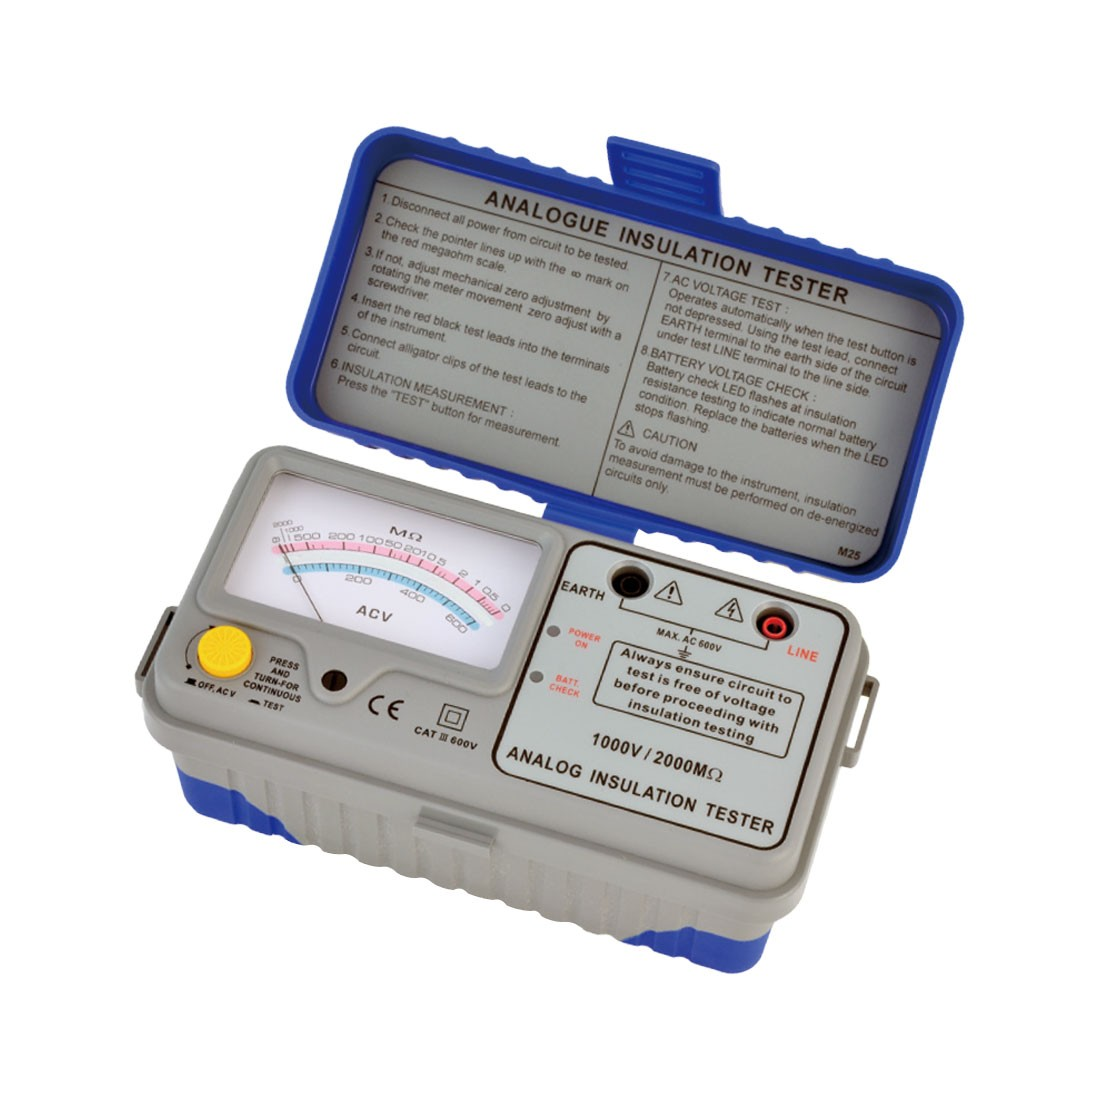 1126IN Series: Analogue (Up to 1kV) Insulation Tester